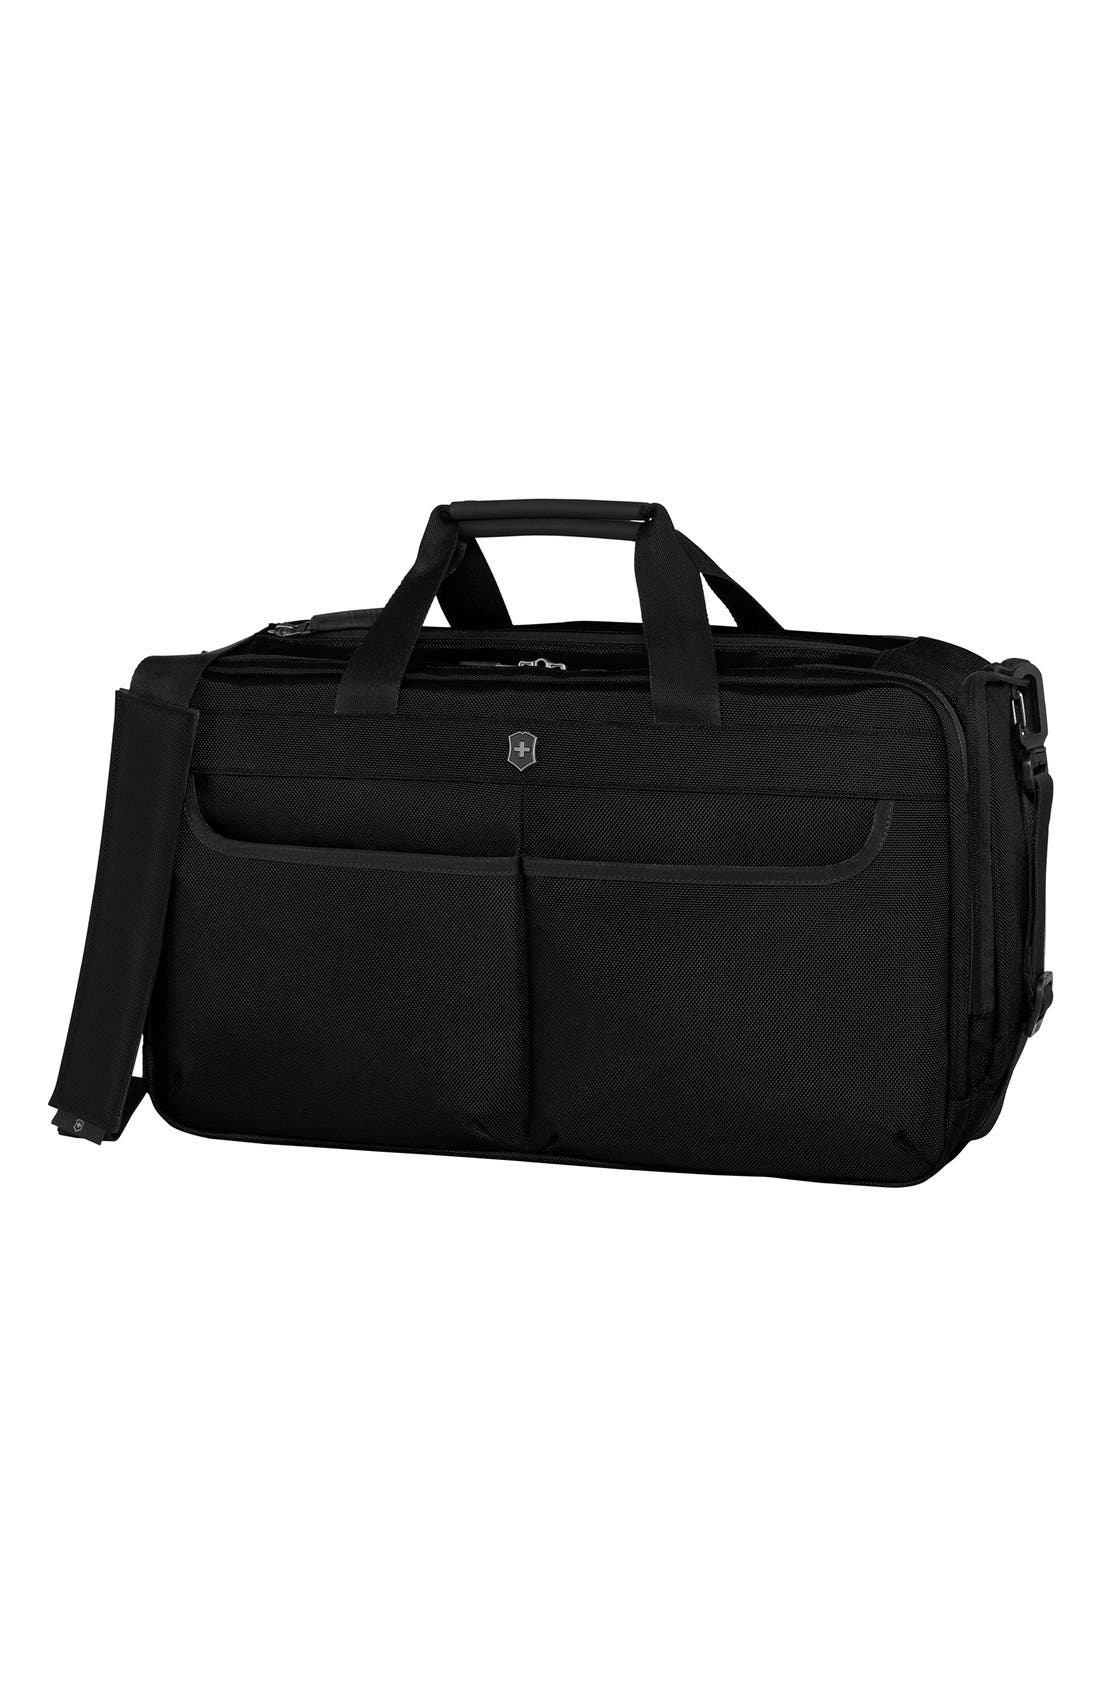 WT 5.0 Duffel Bag,                             Main thumbnail 1, color,                             Black